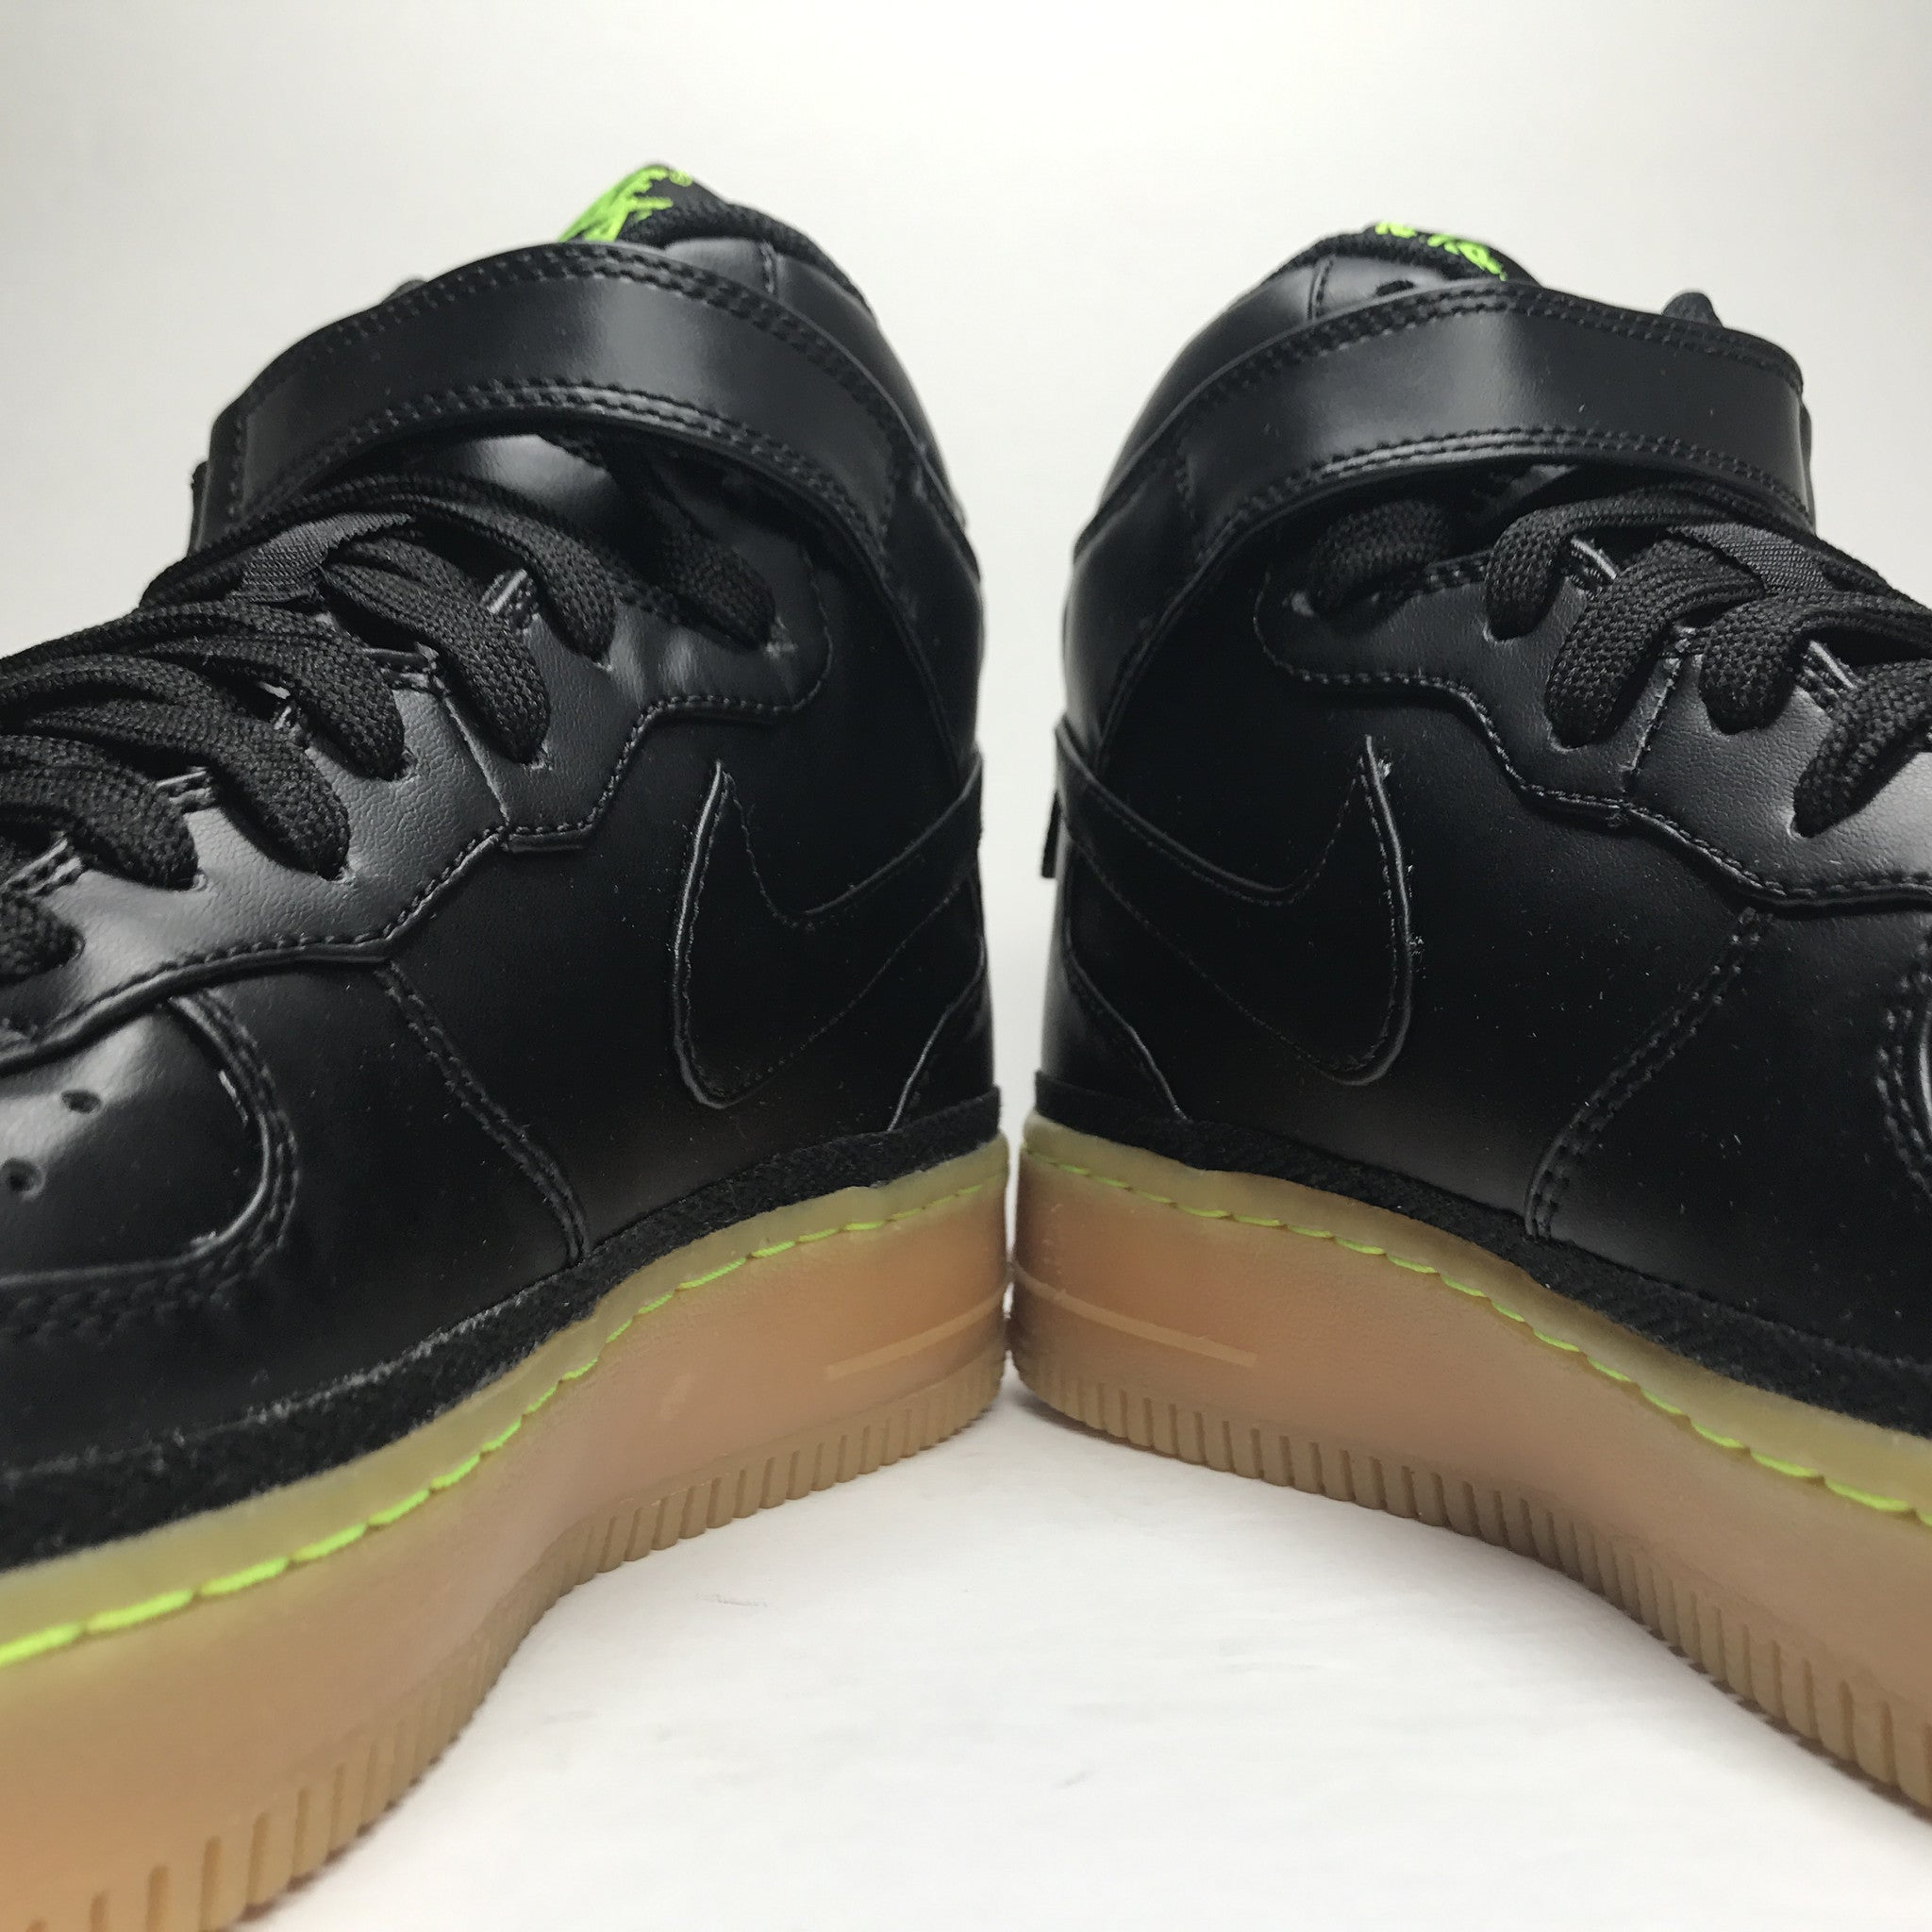 DS Nike Air Force 1 One LV8 GS Black/Gum Size 7Y